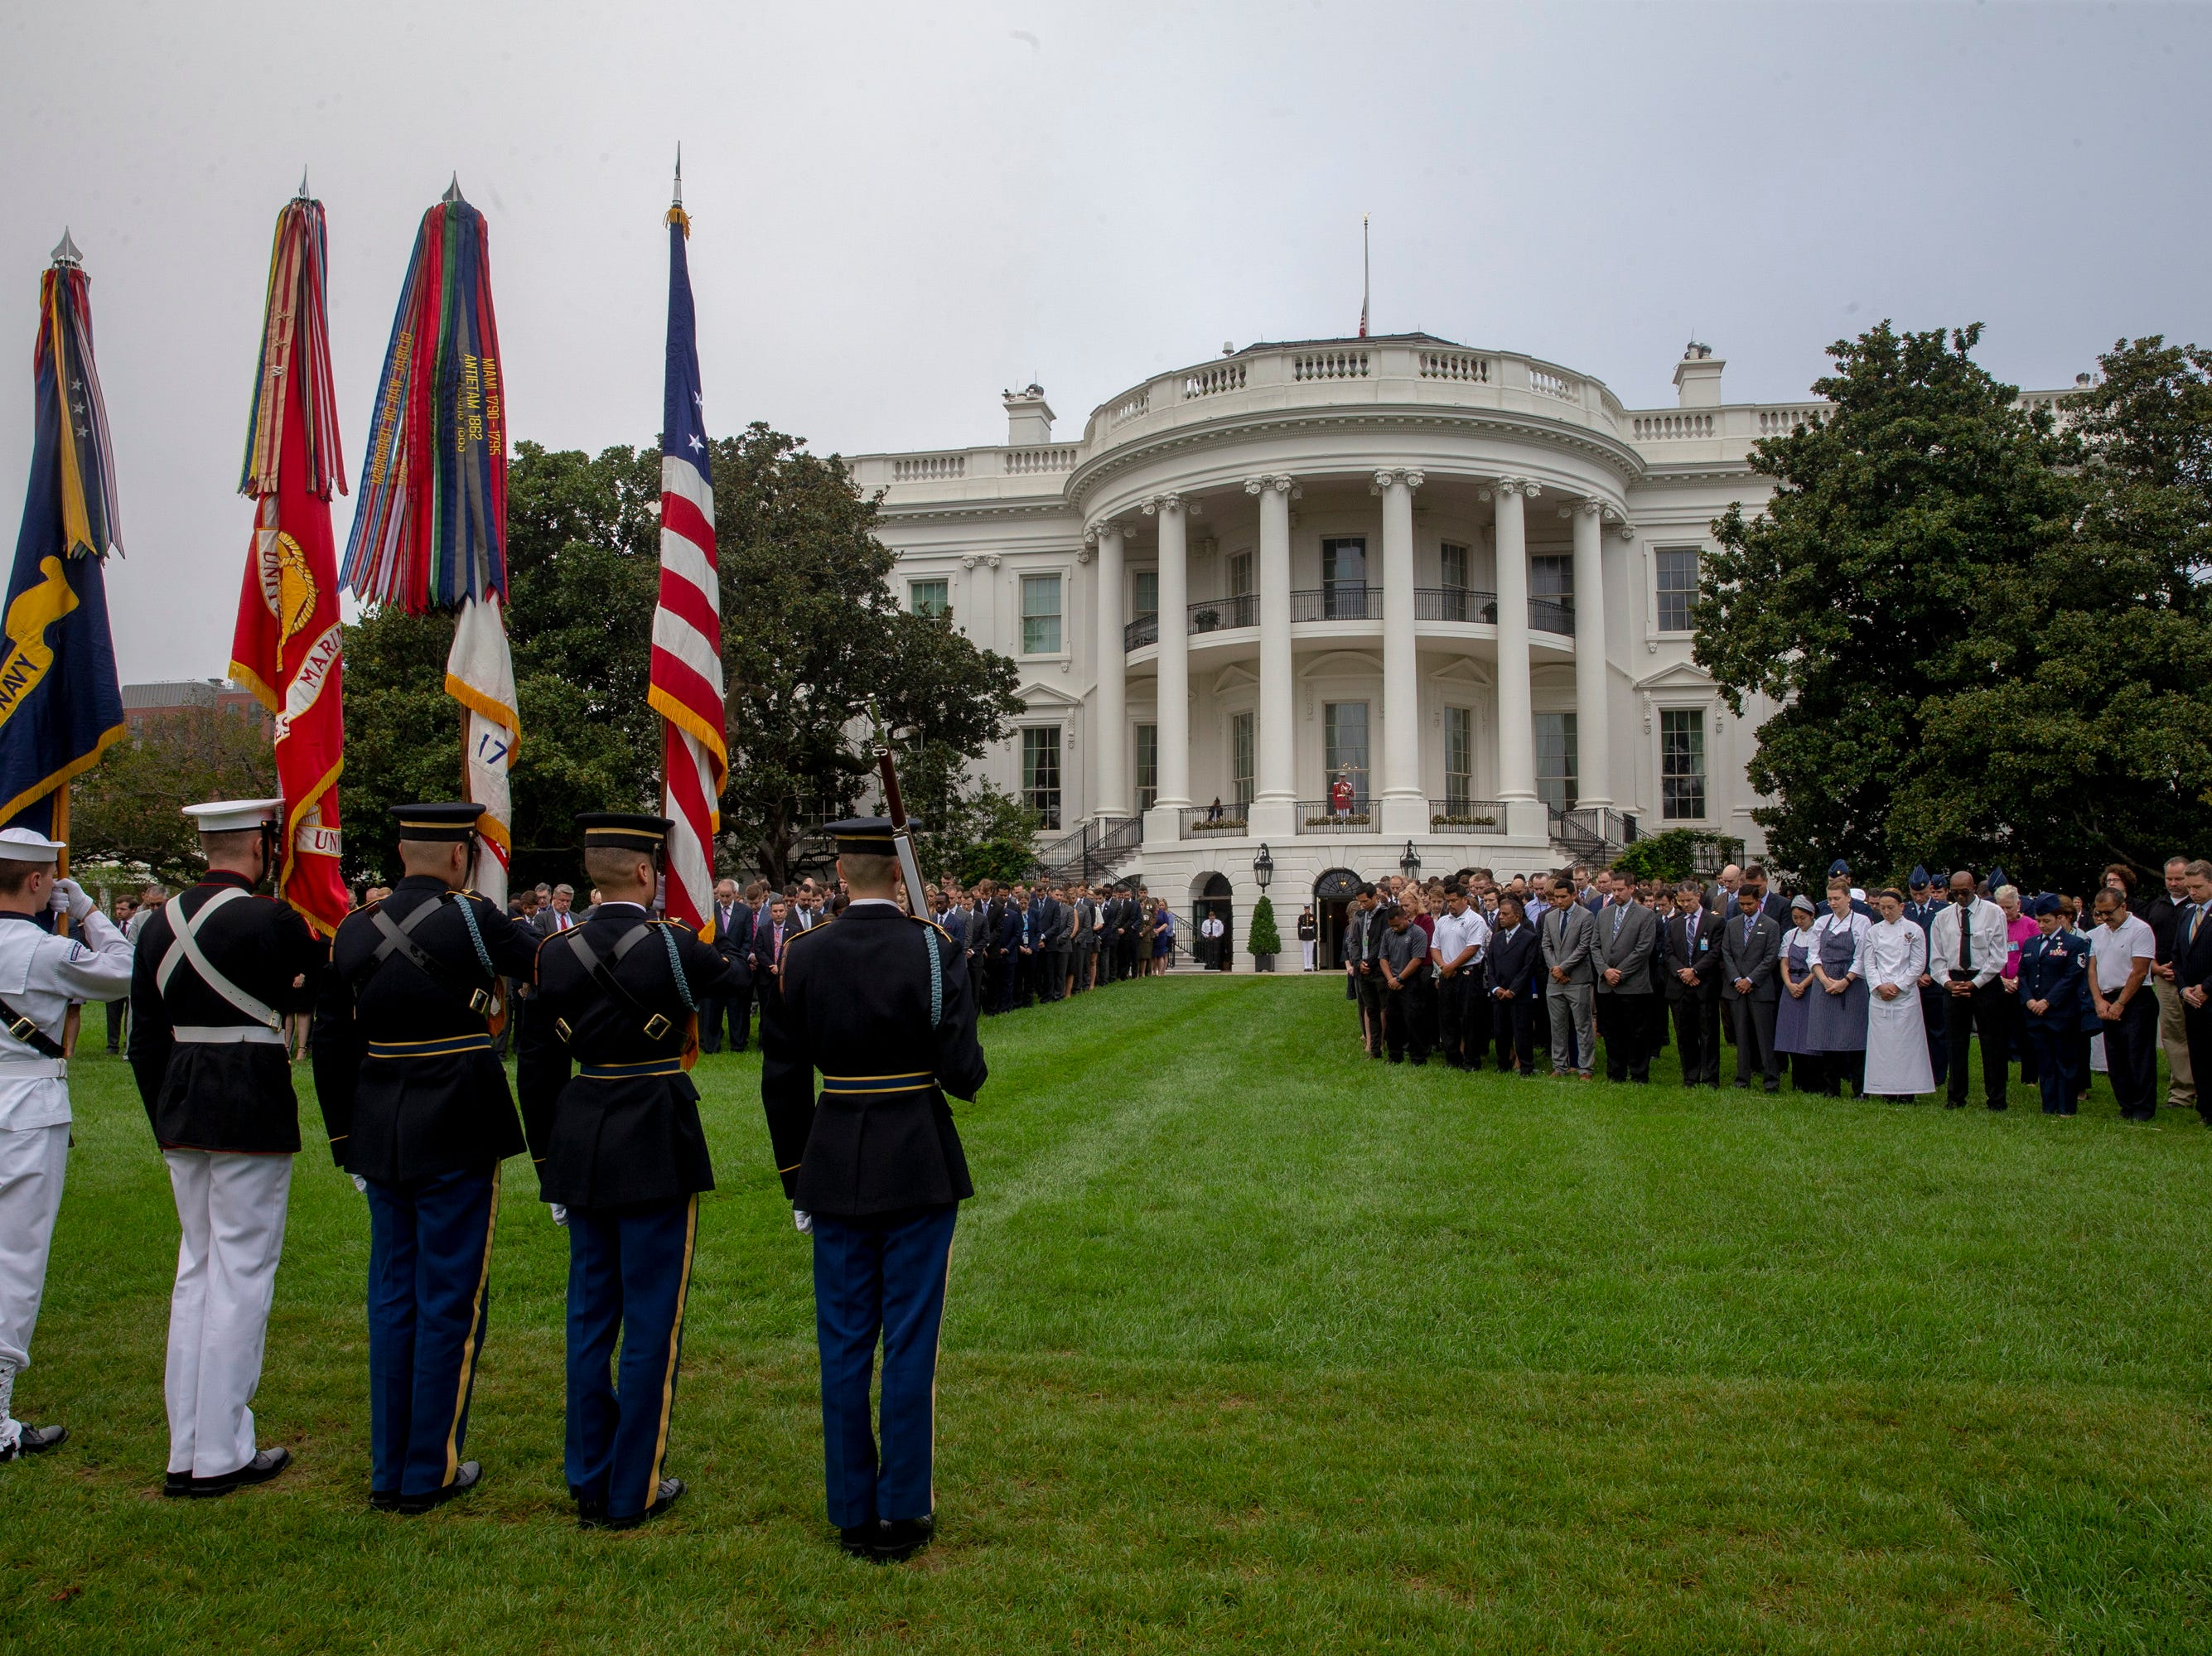 The Military Color guard presents the flag as staff gather on the on the South Lawn of the White House for a moment of silence in Washington.